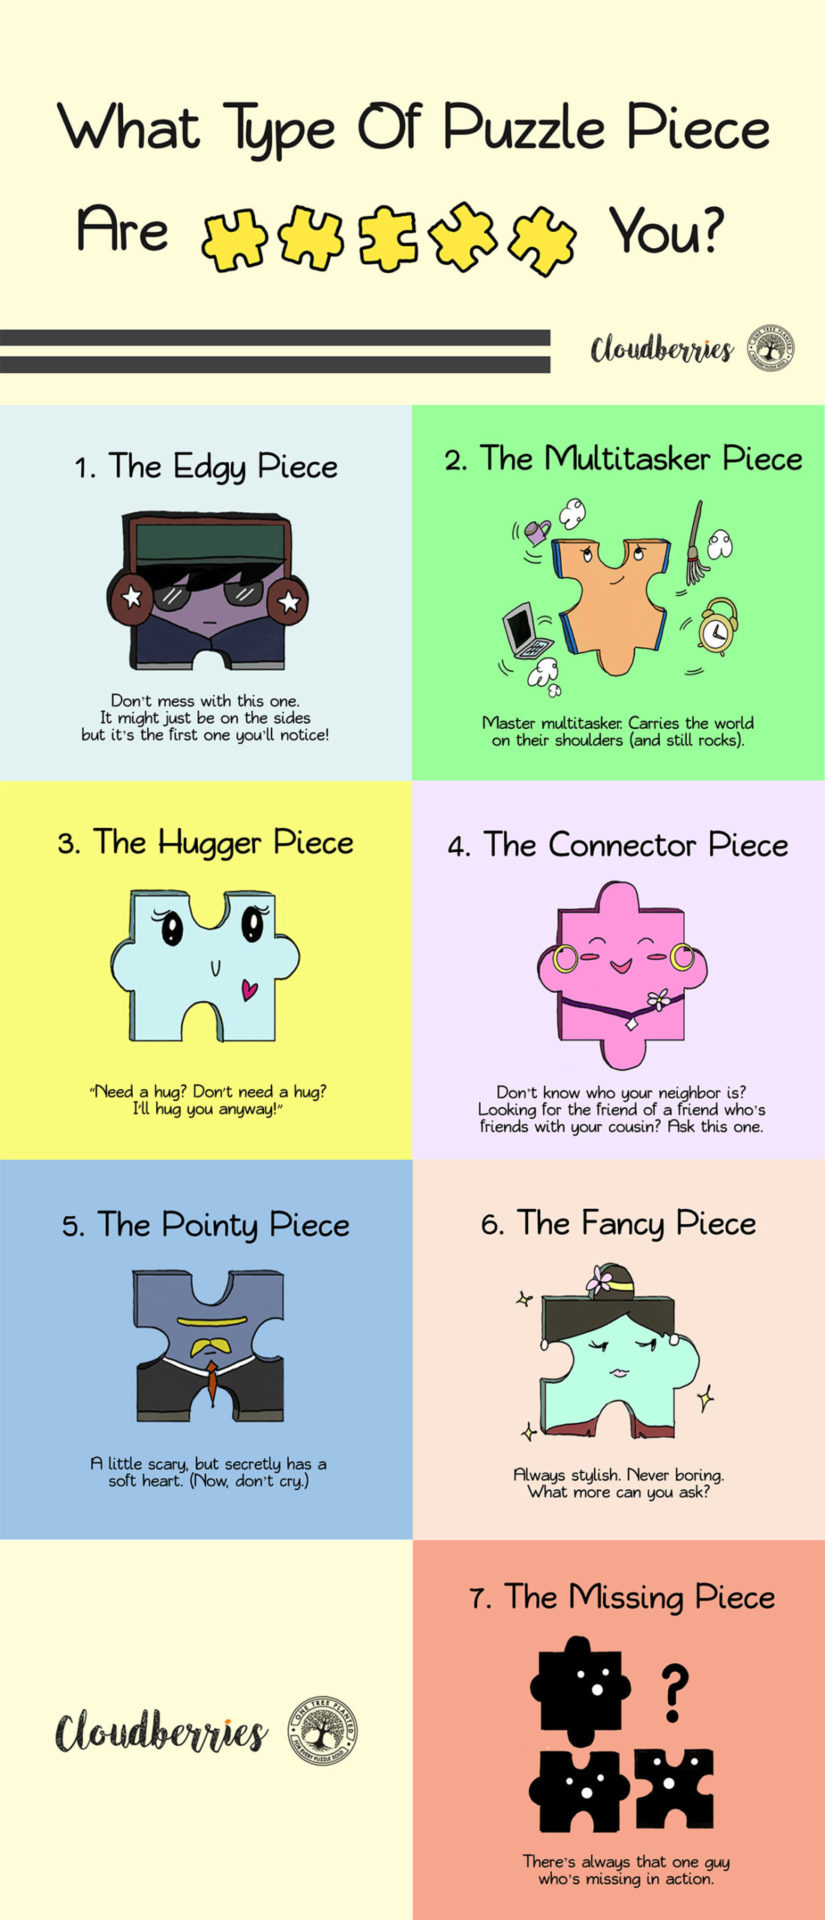 What kind of puzzle piece are you?